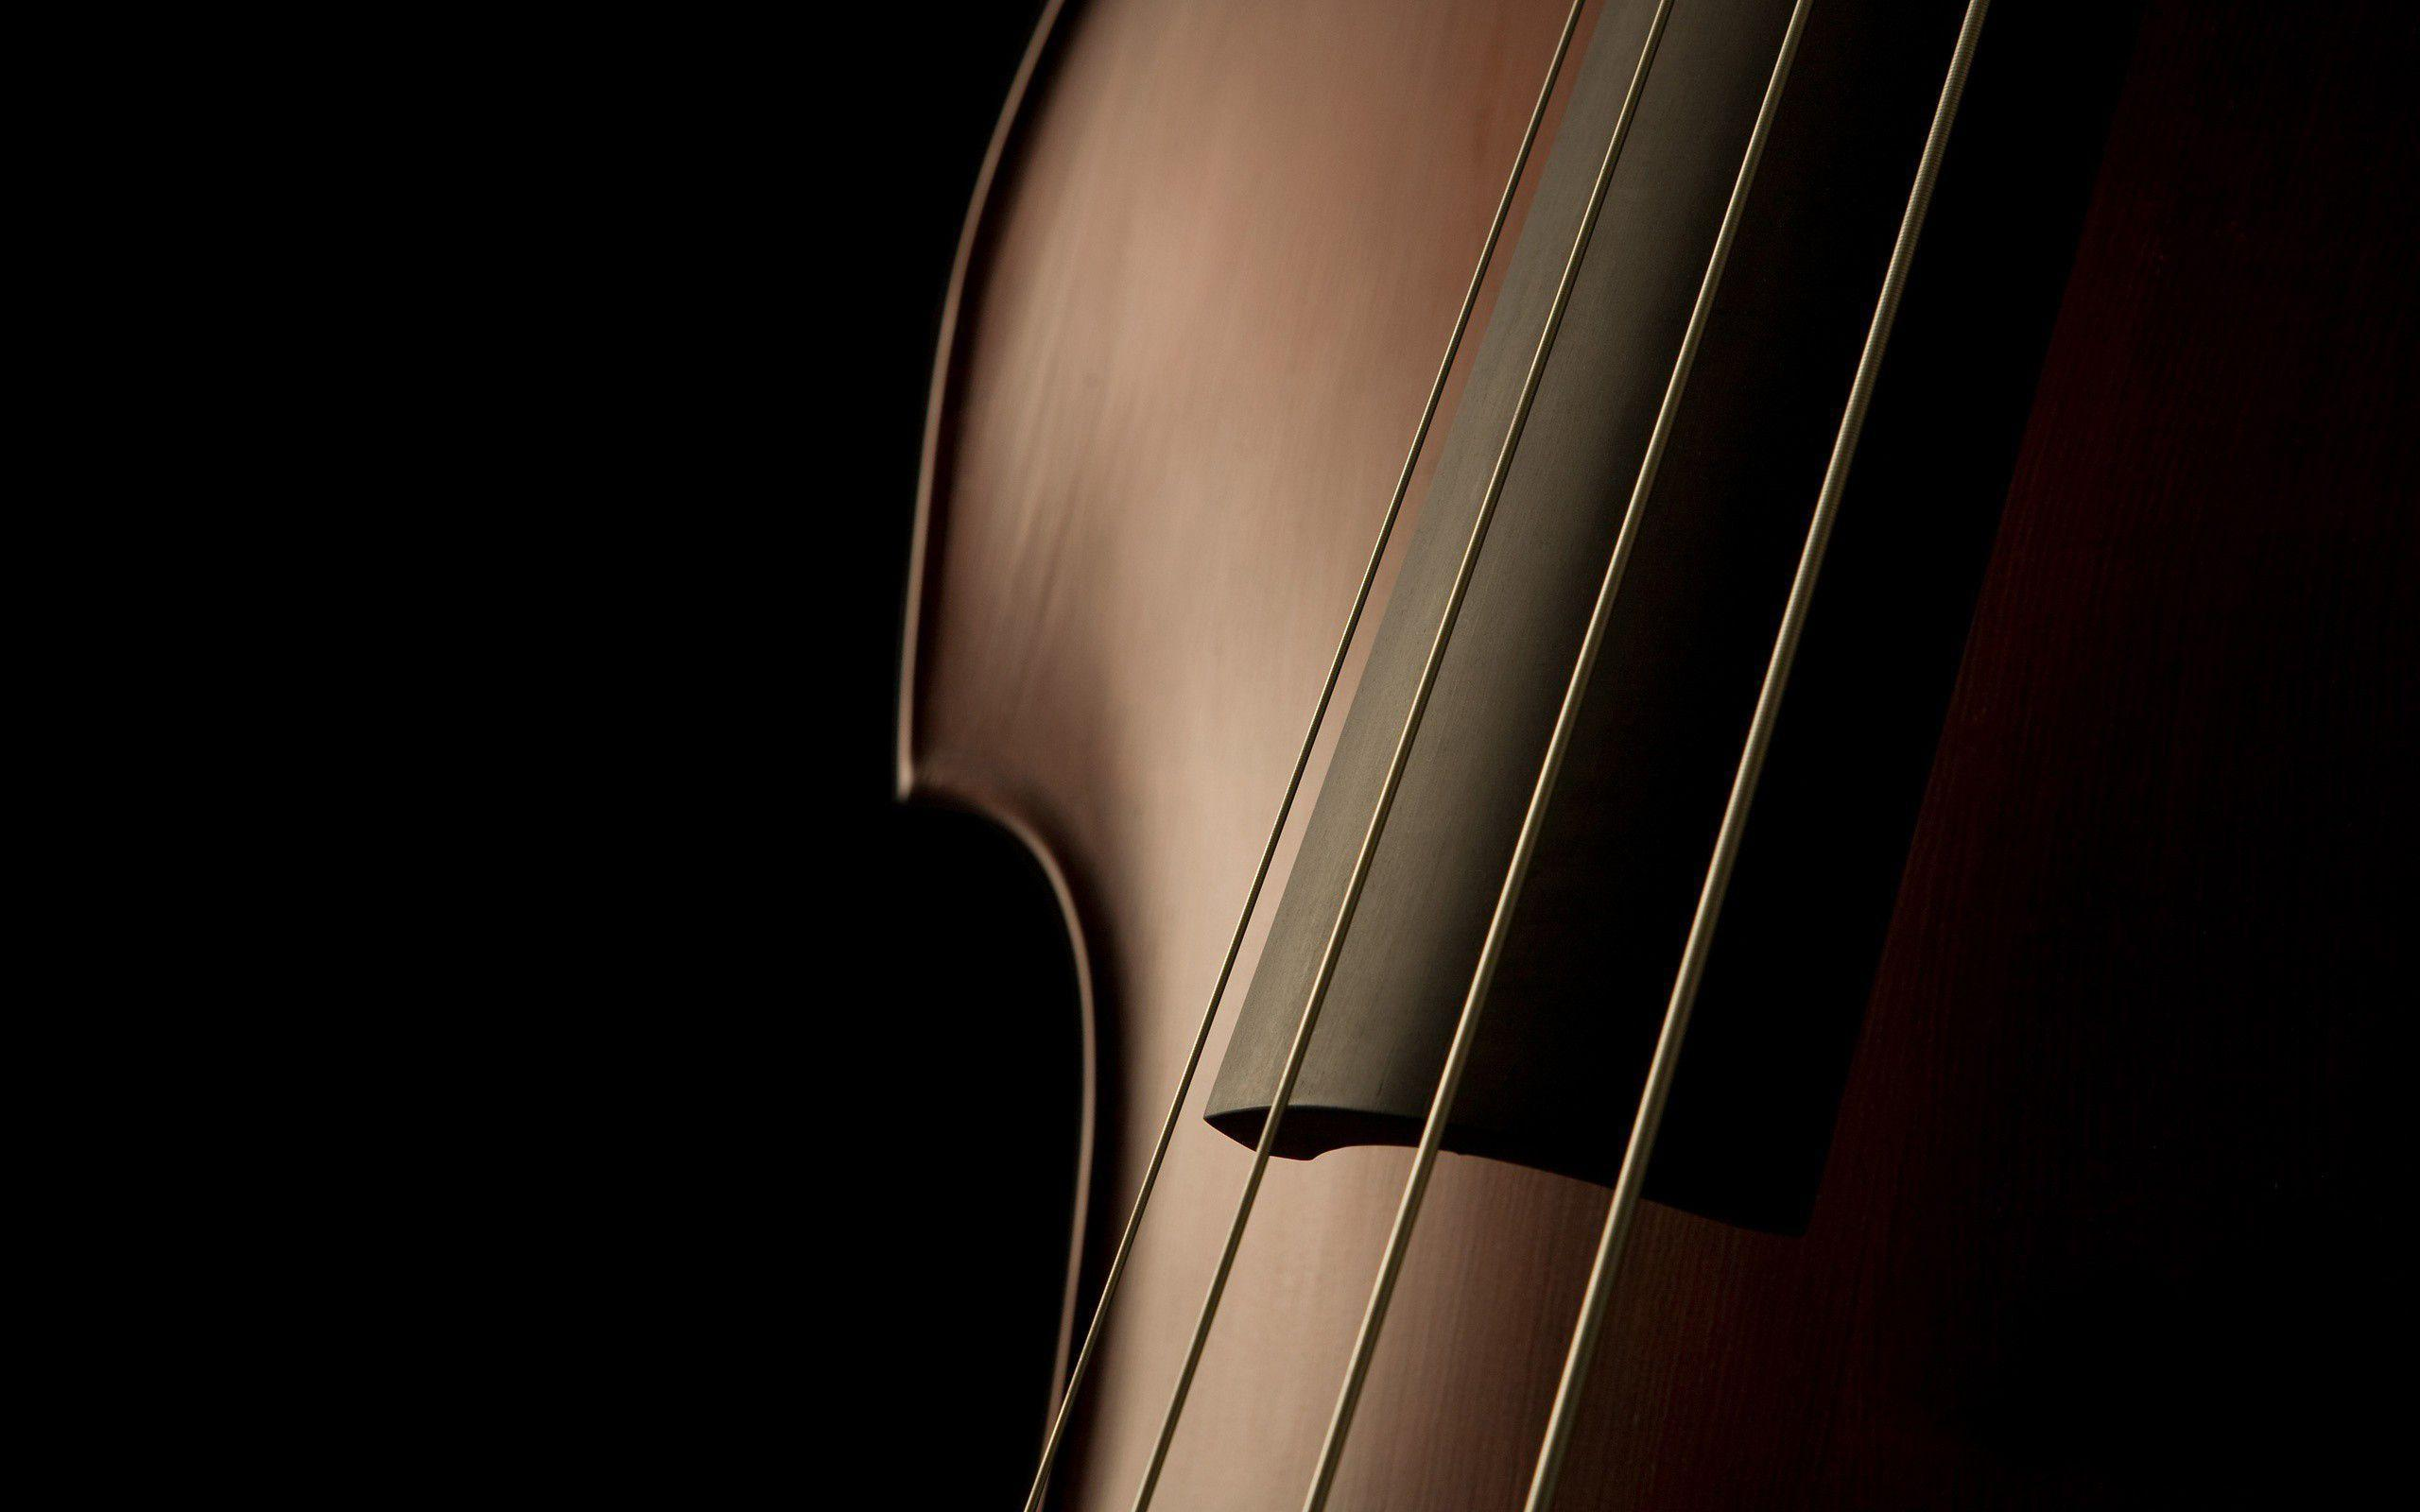 Awesome Violin Macro Wallpaper Photos 165 #3139 Wallpaper | High ...